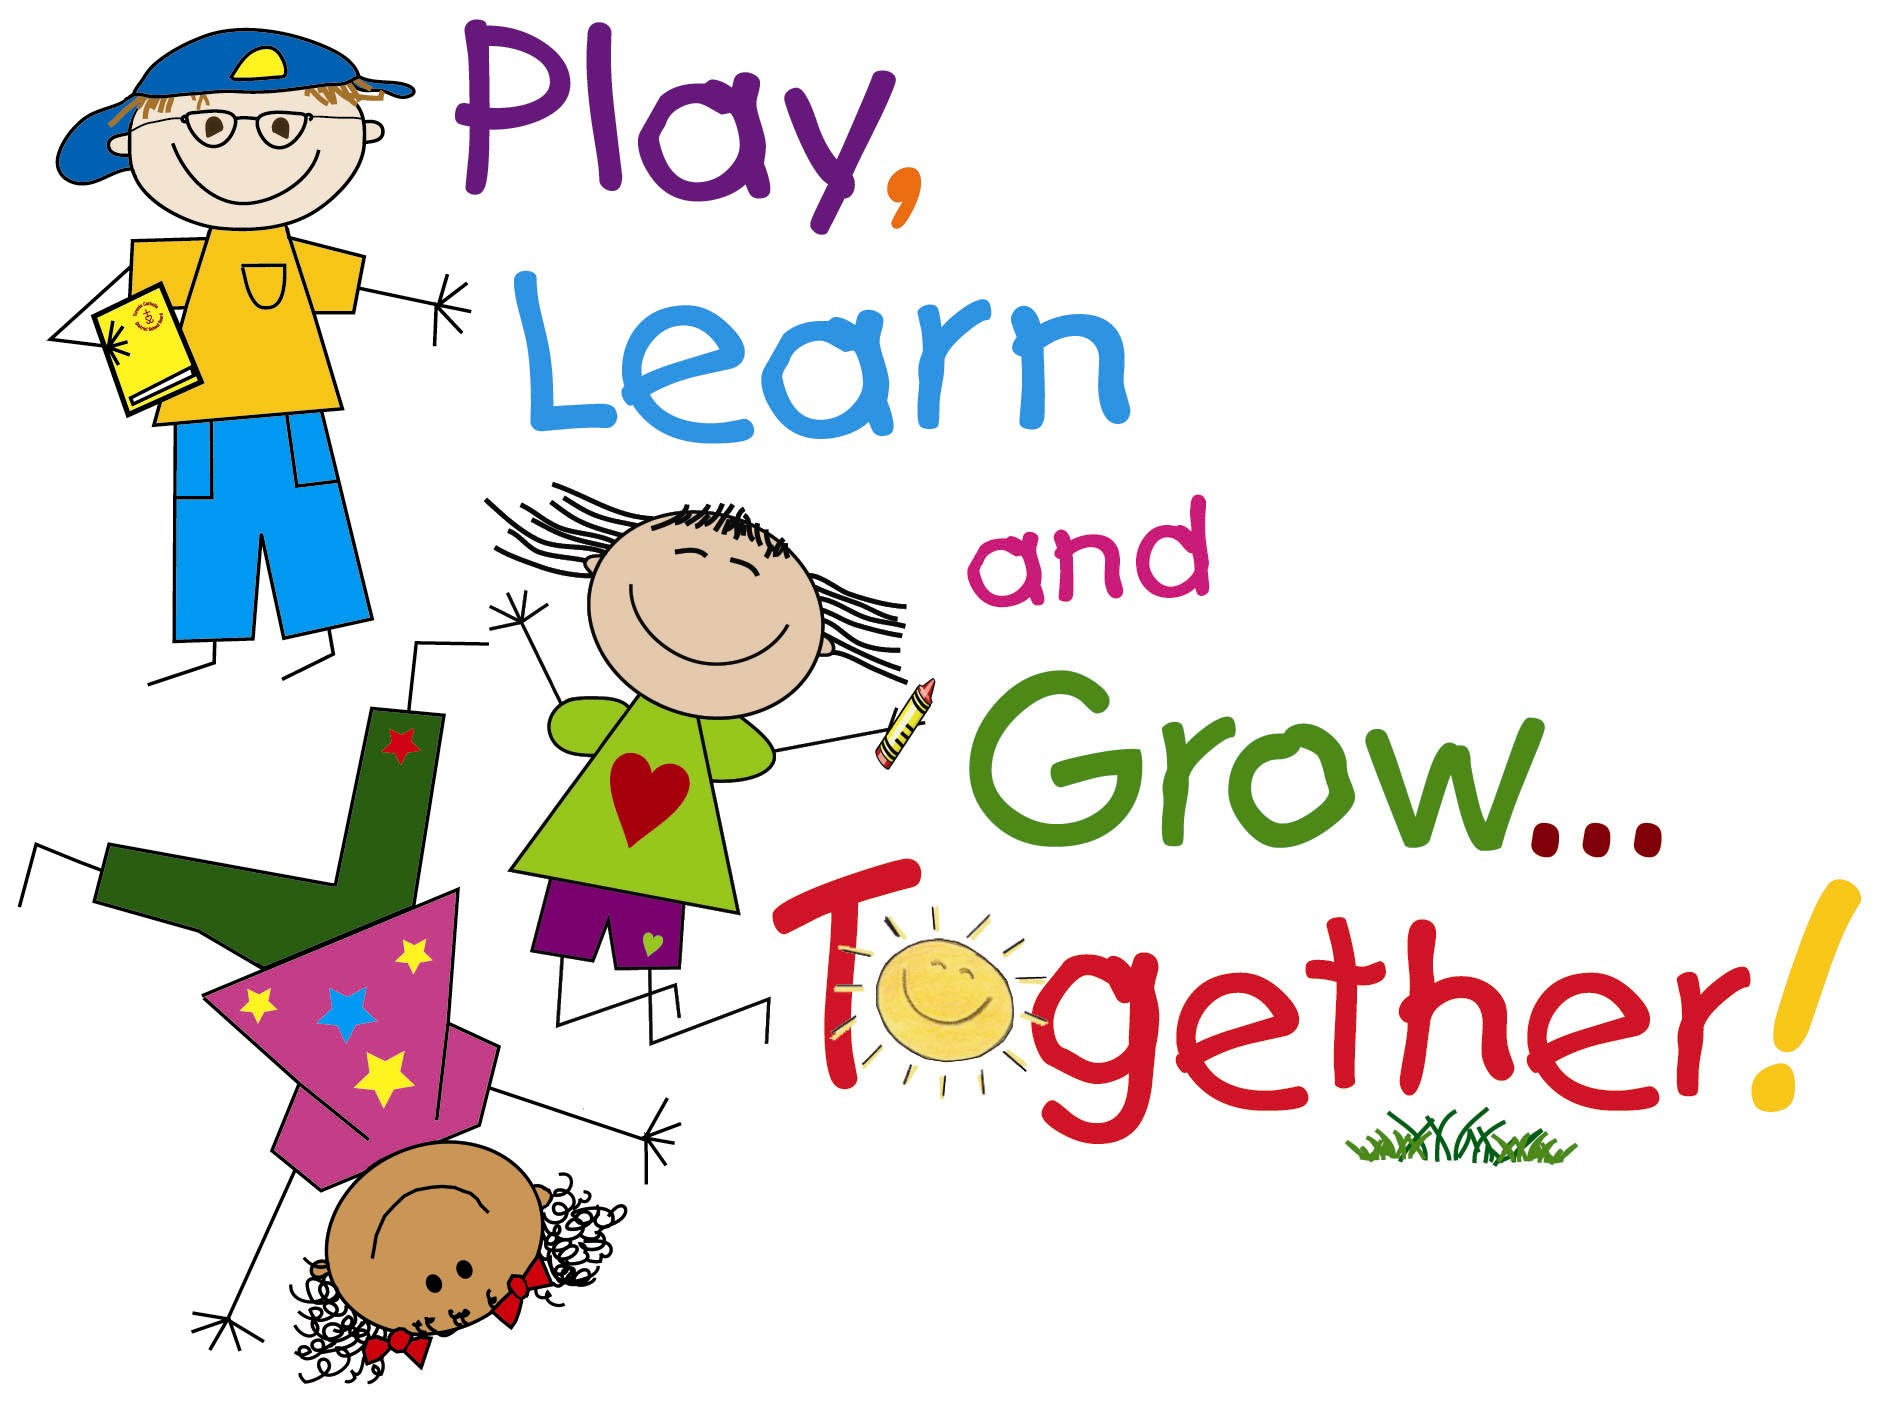 Meeting clipart teacher's Kindergarten Welcome To Clipart Clipart